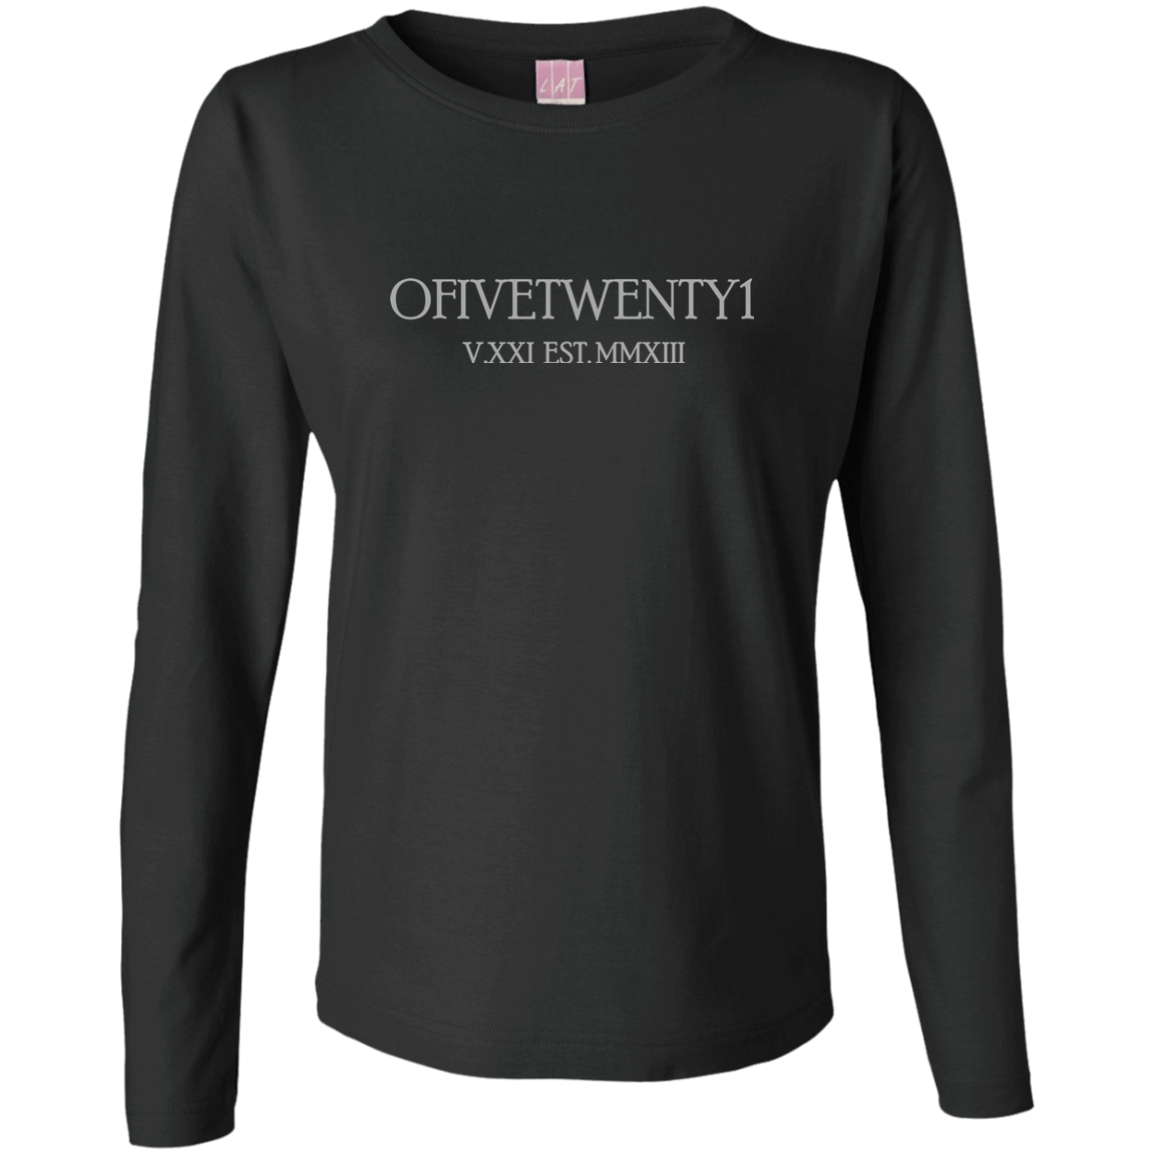 OFiveTwenty1 Ladies' LS Cotton T-Shirt